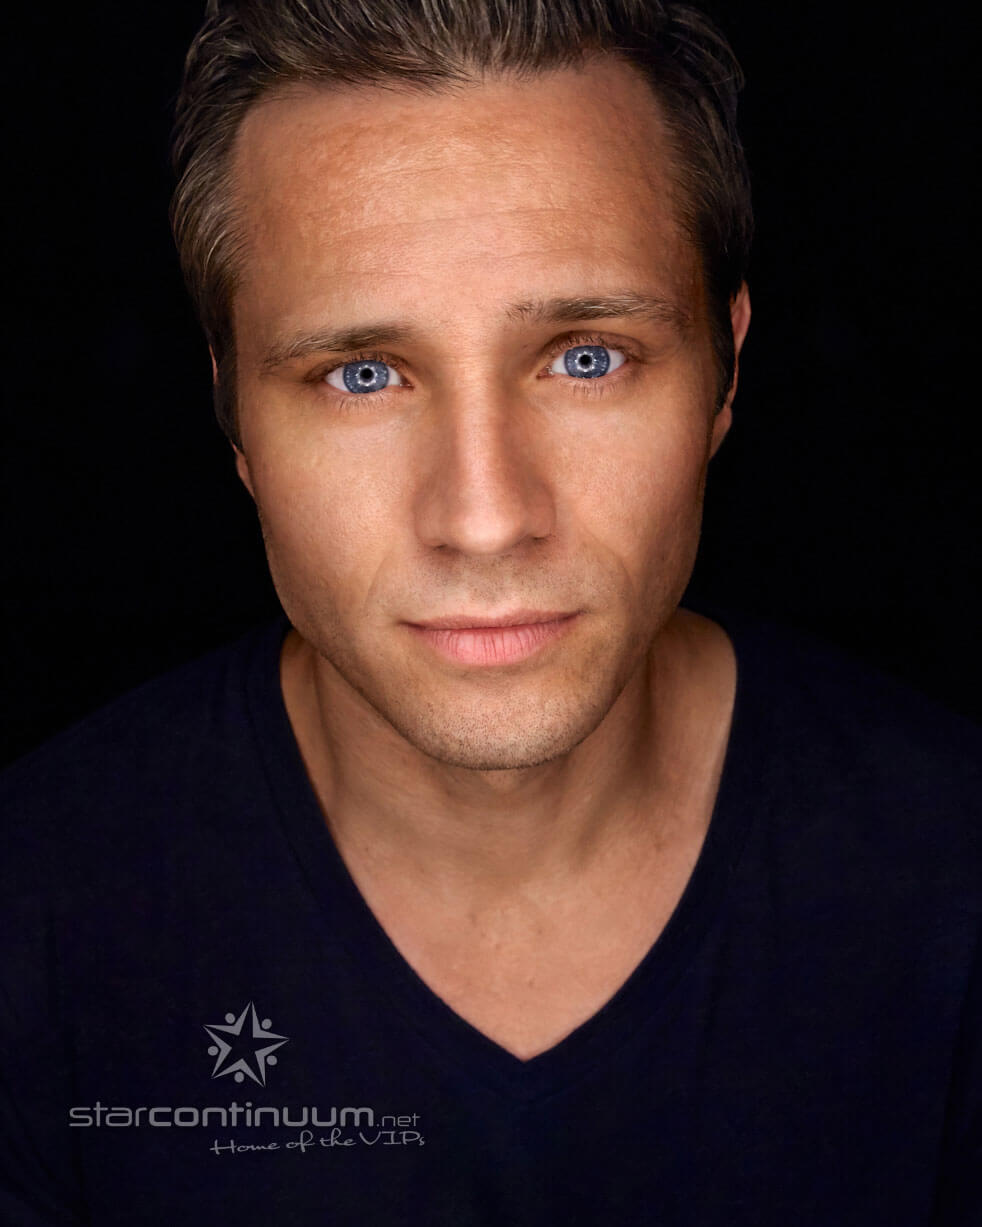 starcontinuum.net | Faces | Seamus Dever